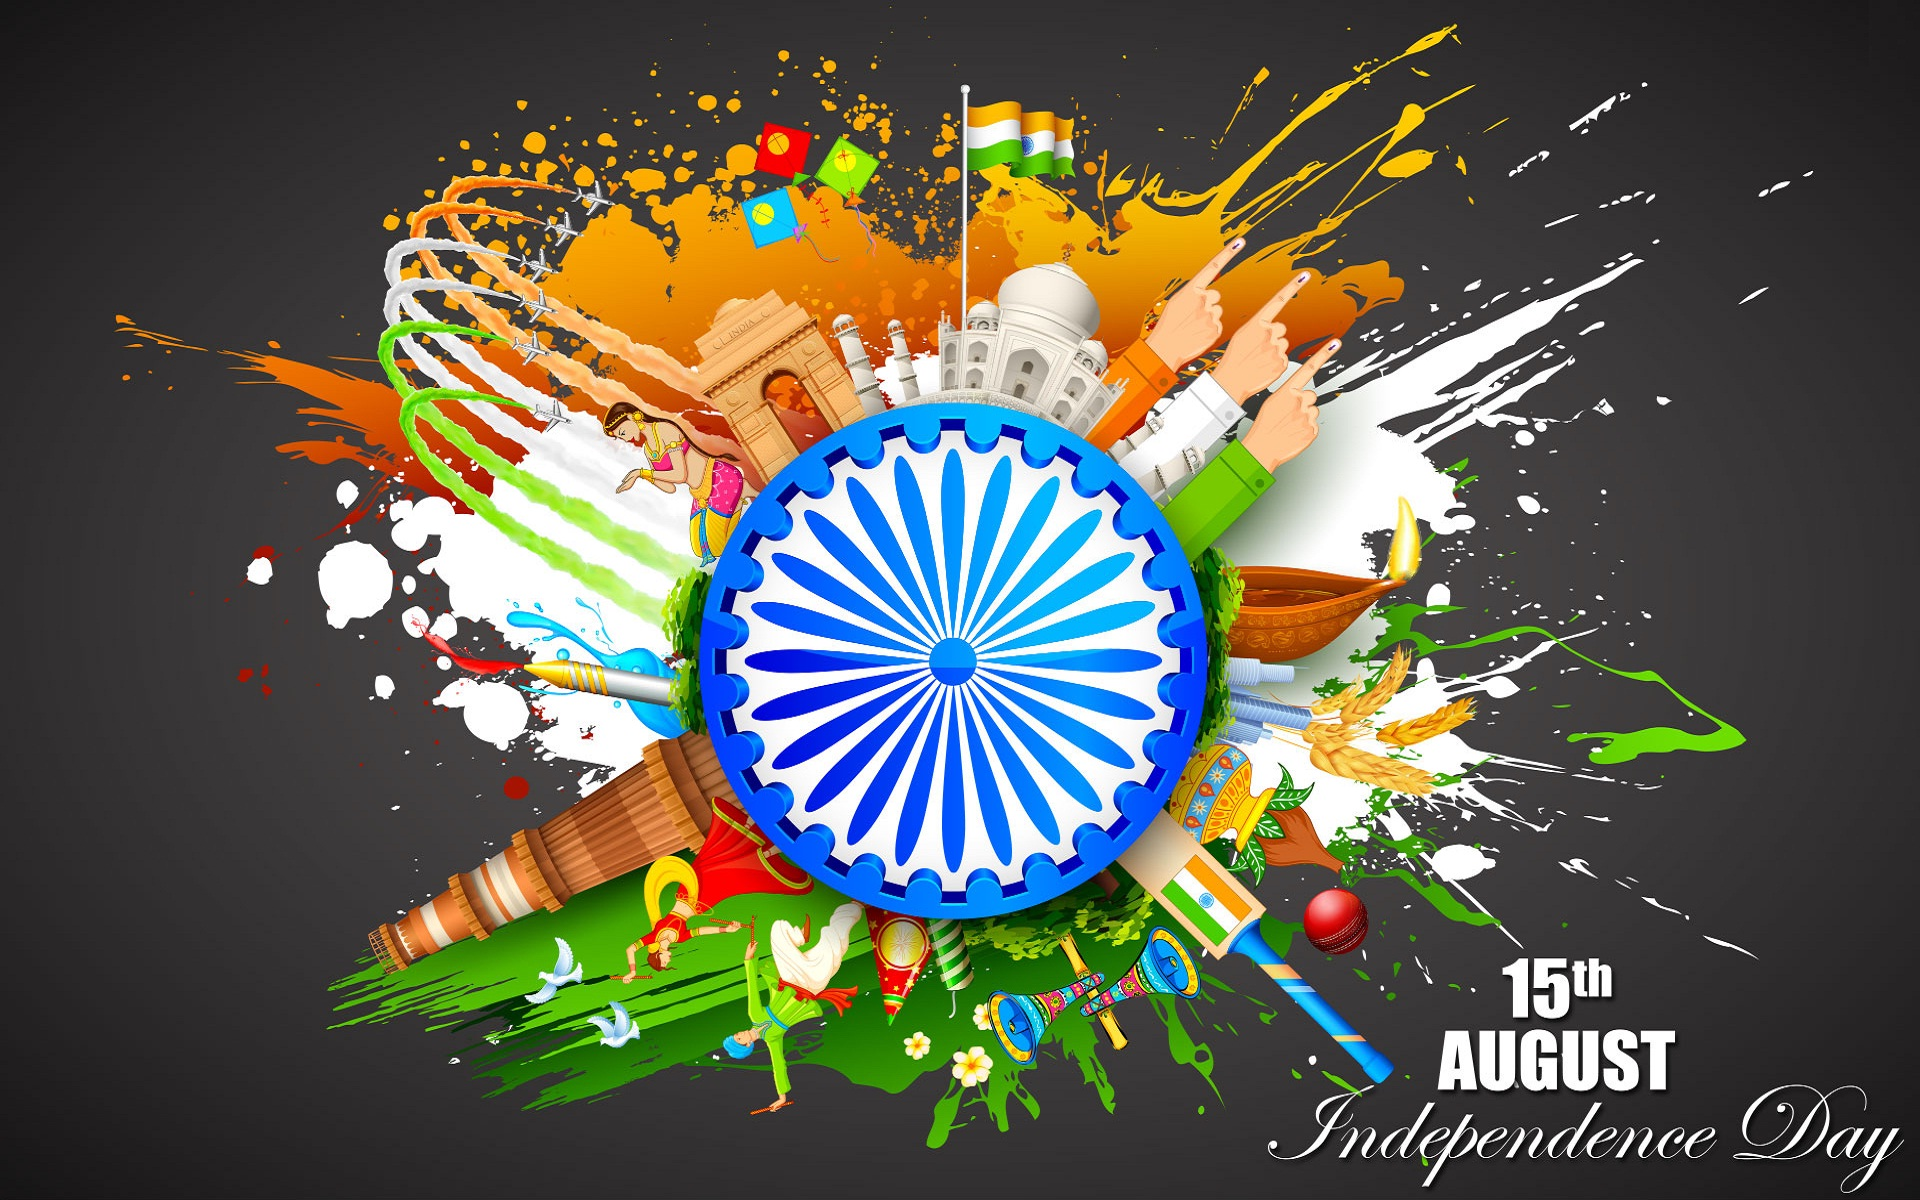 http://www.jkahir.com/wp-content/uploads/2018/08/Independence-Day-Celebration-And-Wishing-To-You.jpg